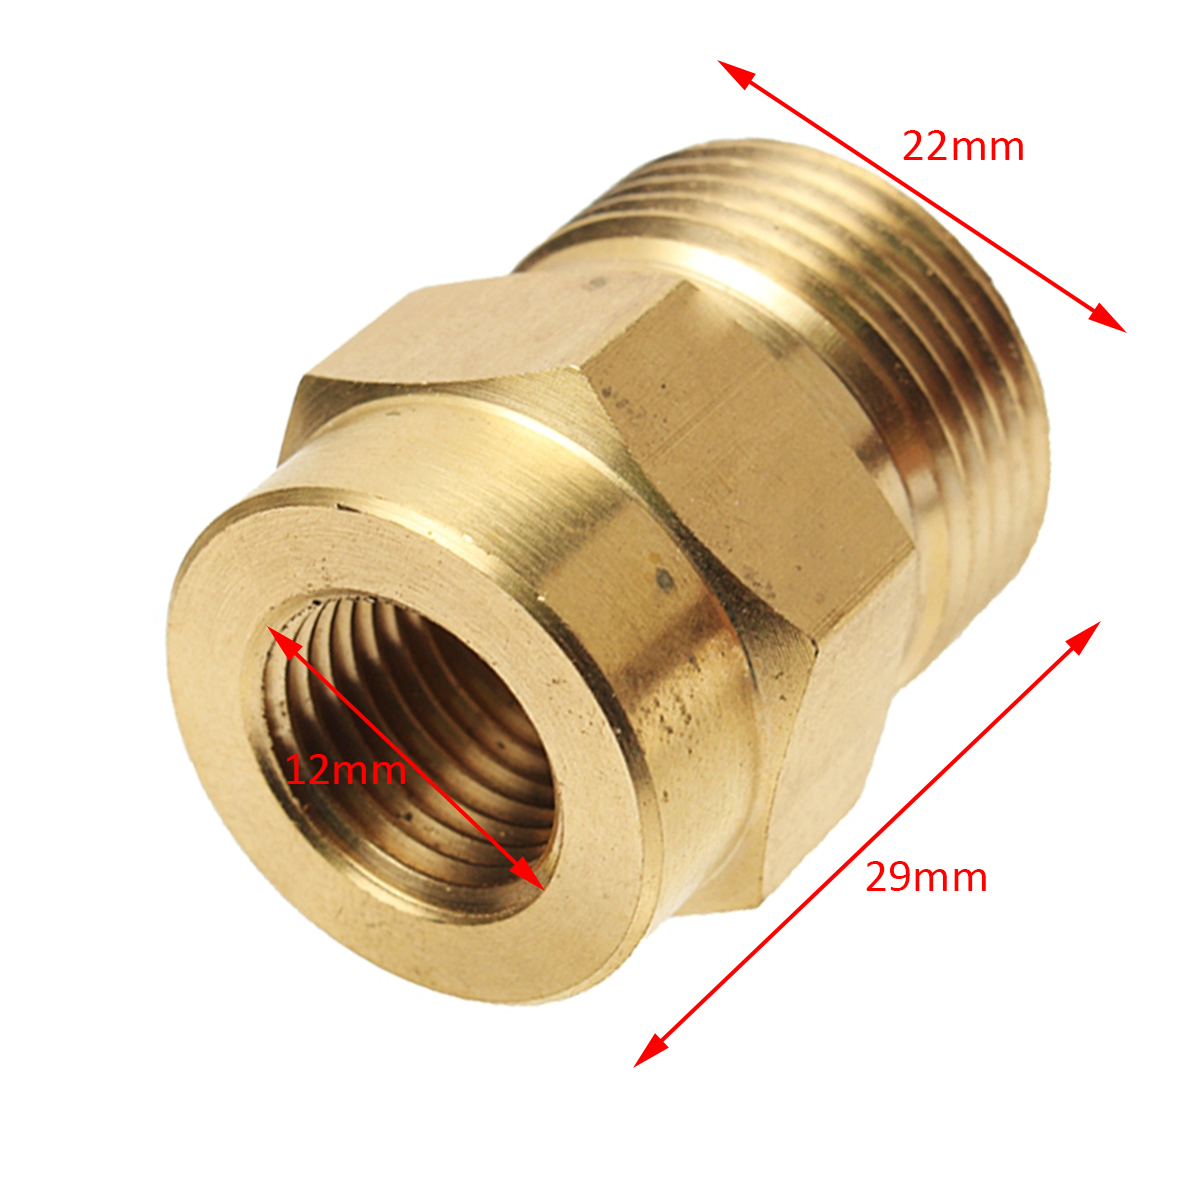 1pc Brass Washer Adaptor Mayitr Snow Foam Lance Adapter Coupler 1/4 F - M22 22 * 12 * 29mm for High Pressure Water Tools